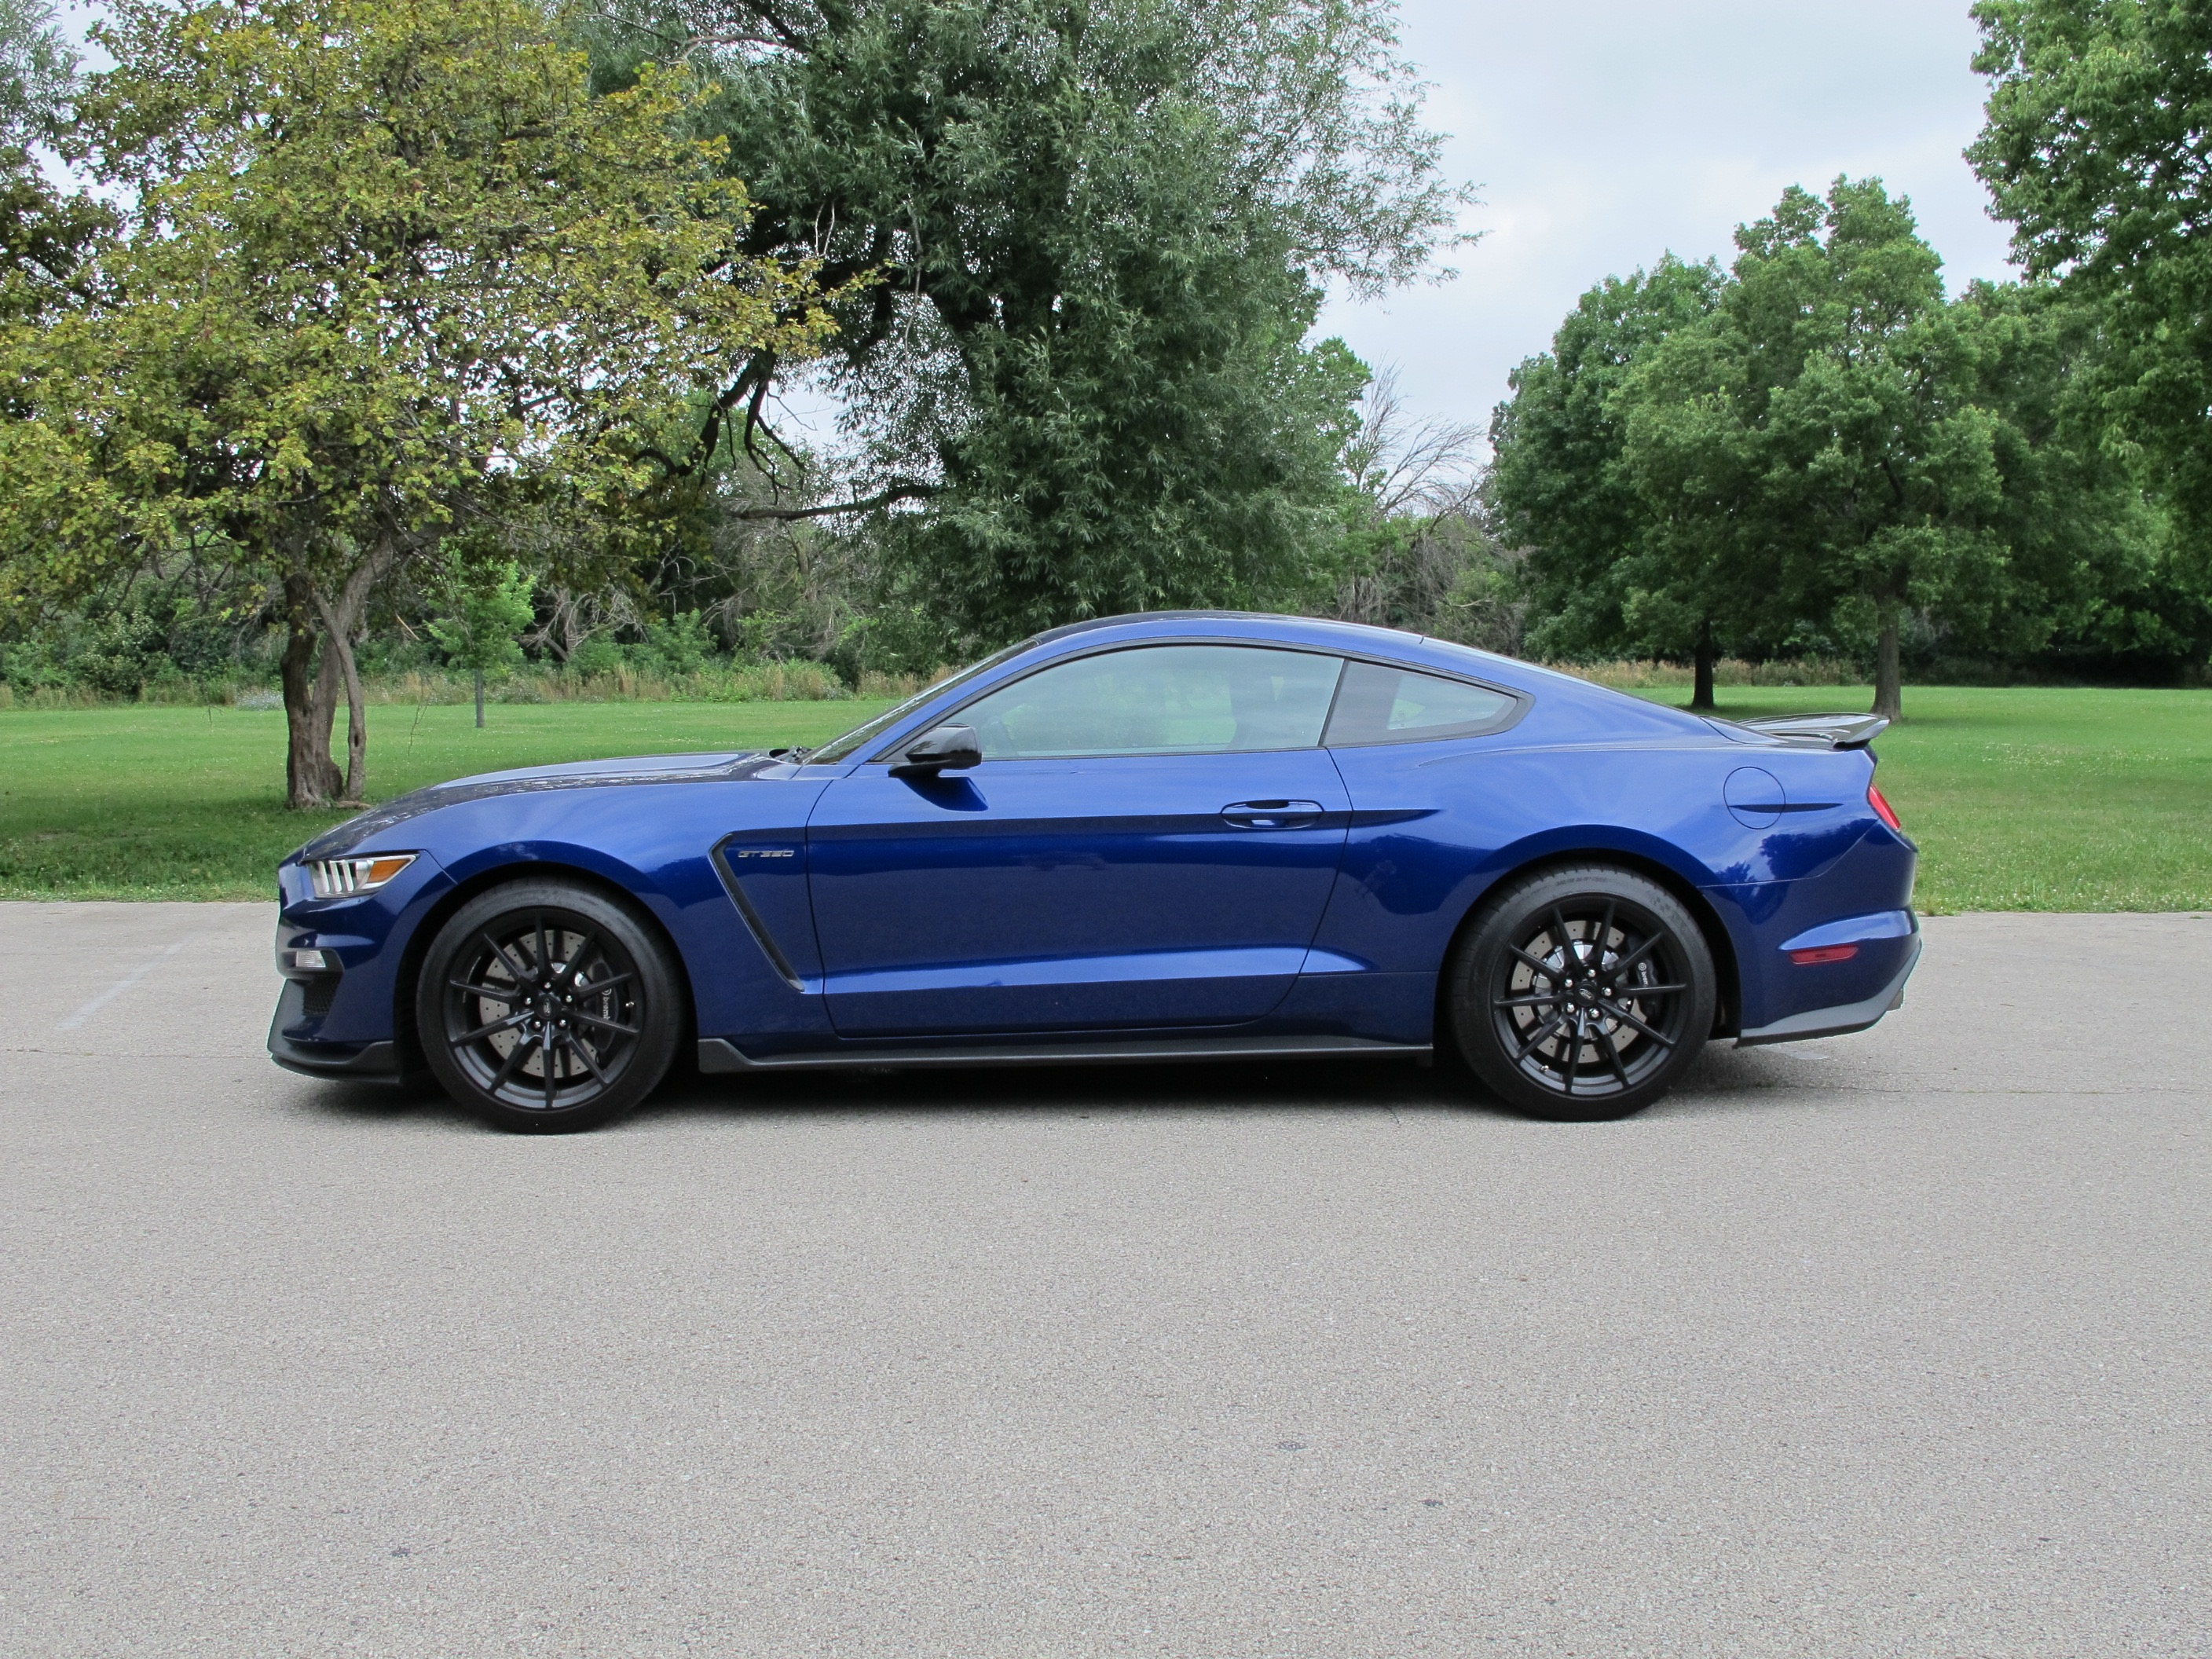 Commuting And The 2016 Ford Shelby Gt350 Mustang Don T Mix